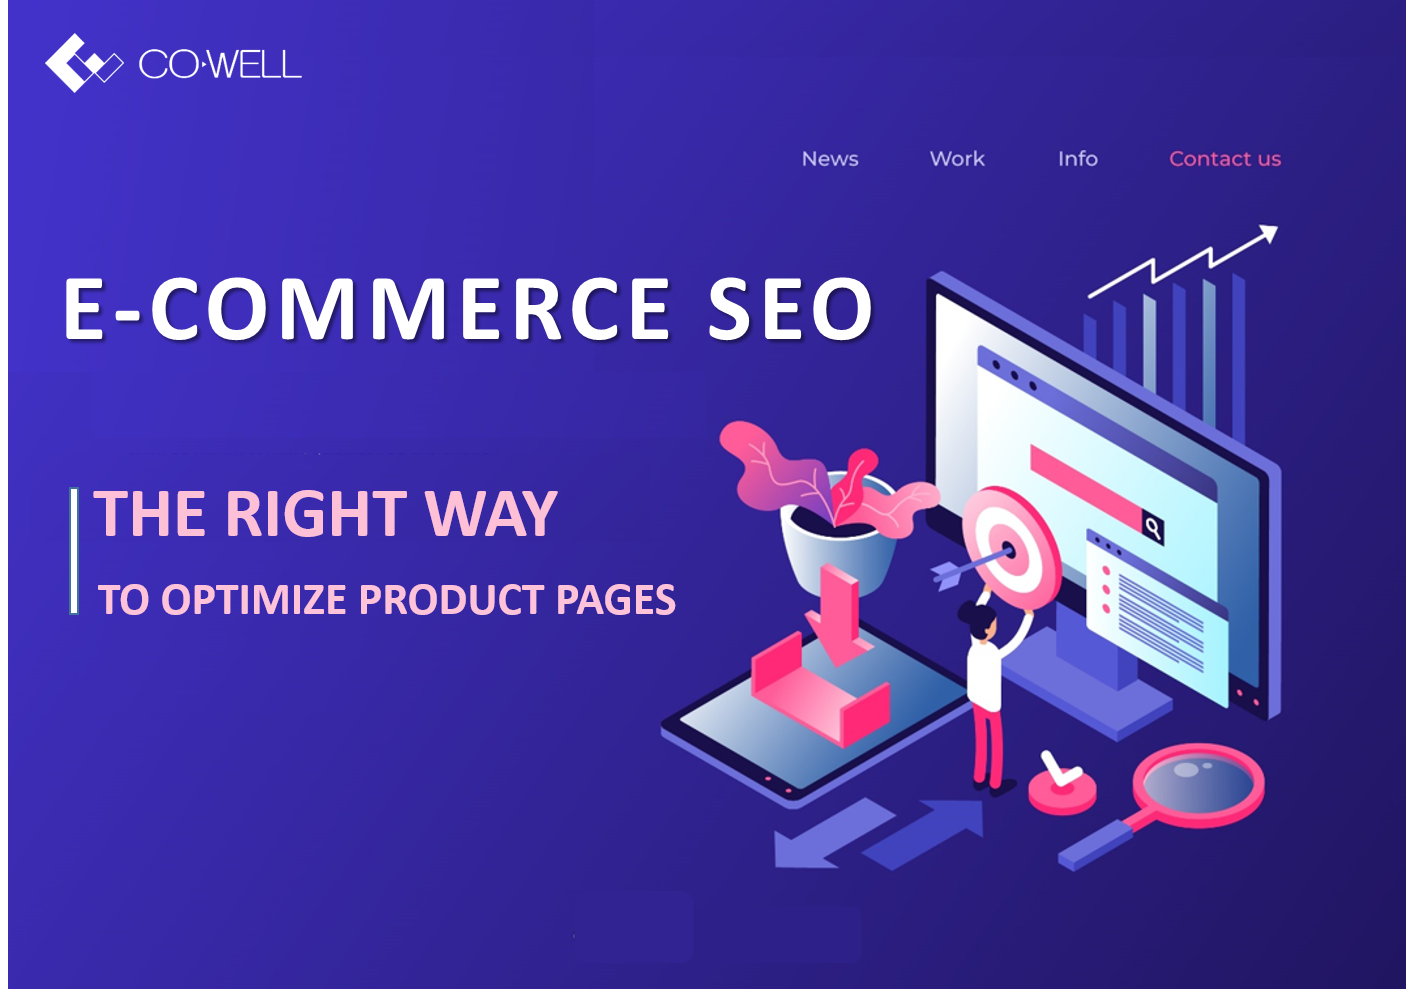 E-COMMERCE SEO: THE RIGHT WAY TO OPTIMIZE PRODUCT PAGES